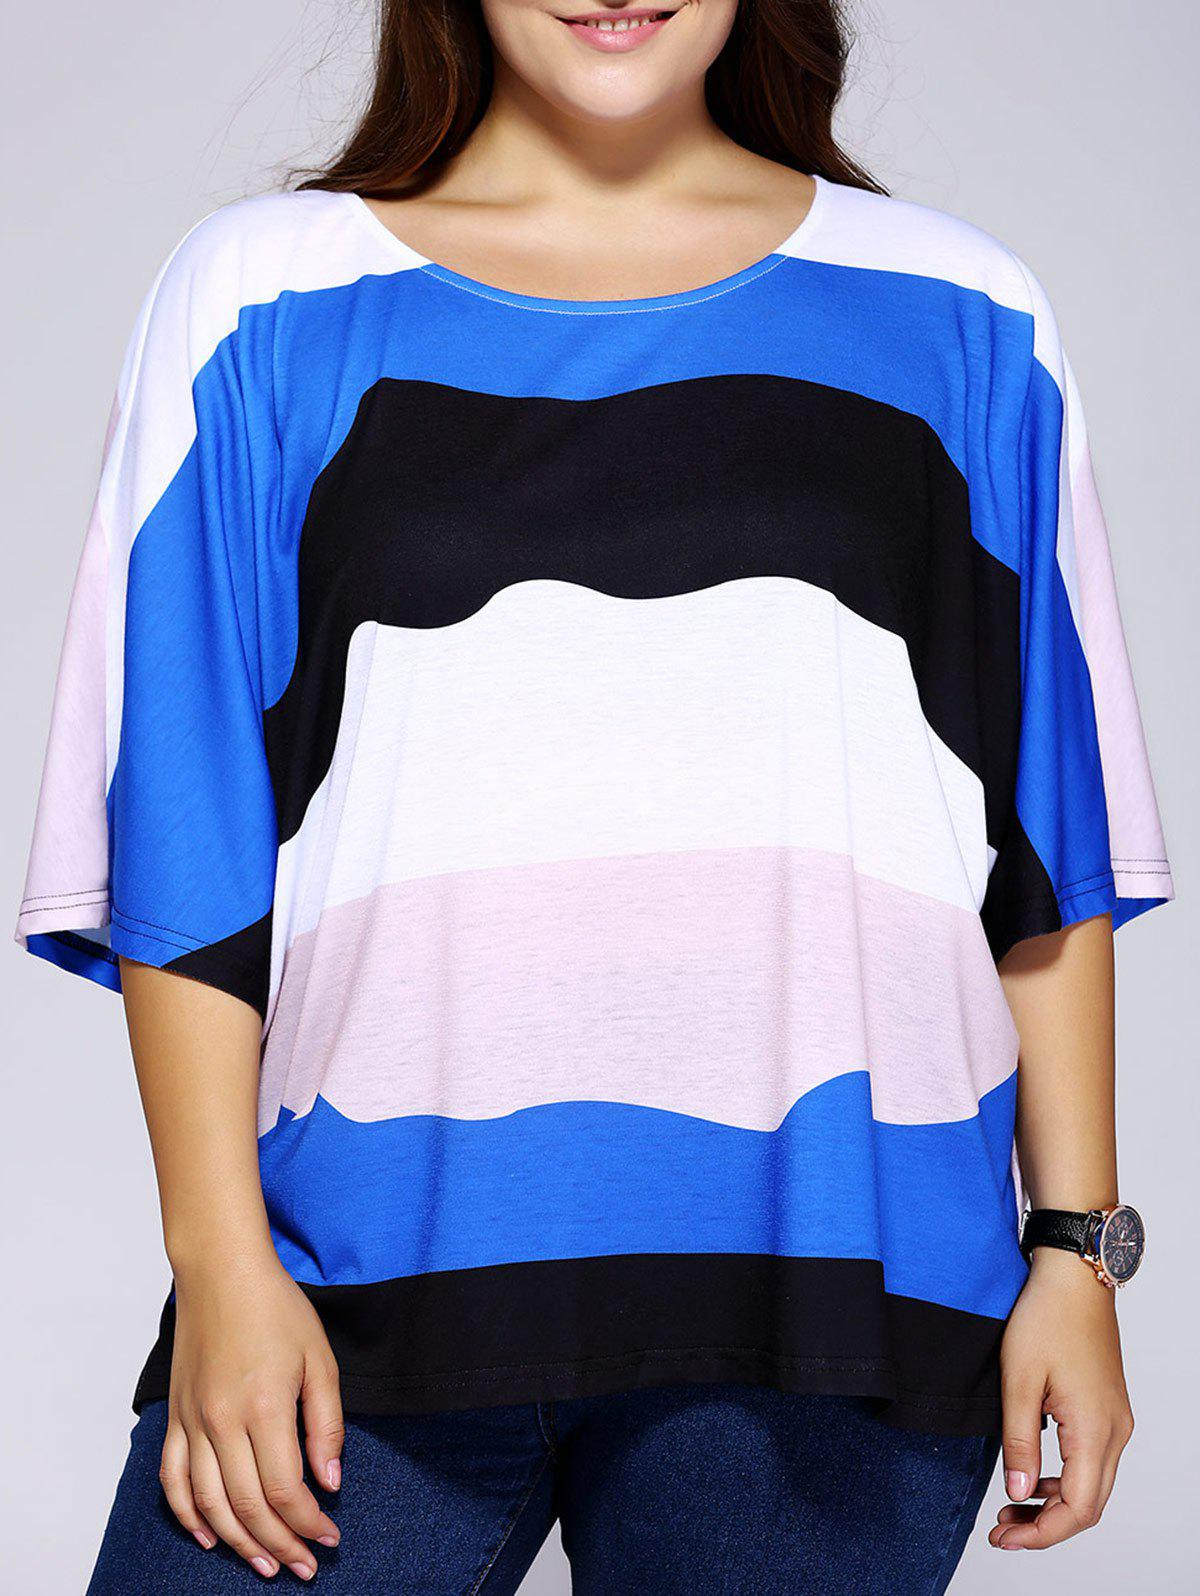 Casual Scoop Neck Loose-Fitting Color Block Stripe Top For Women - 3XL COLORMIX